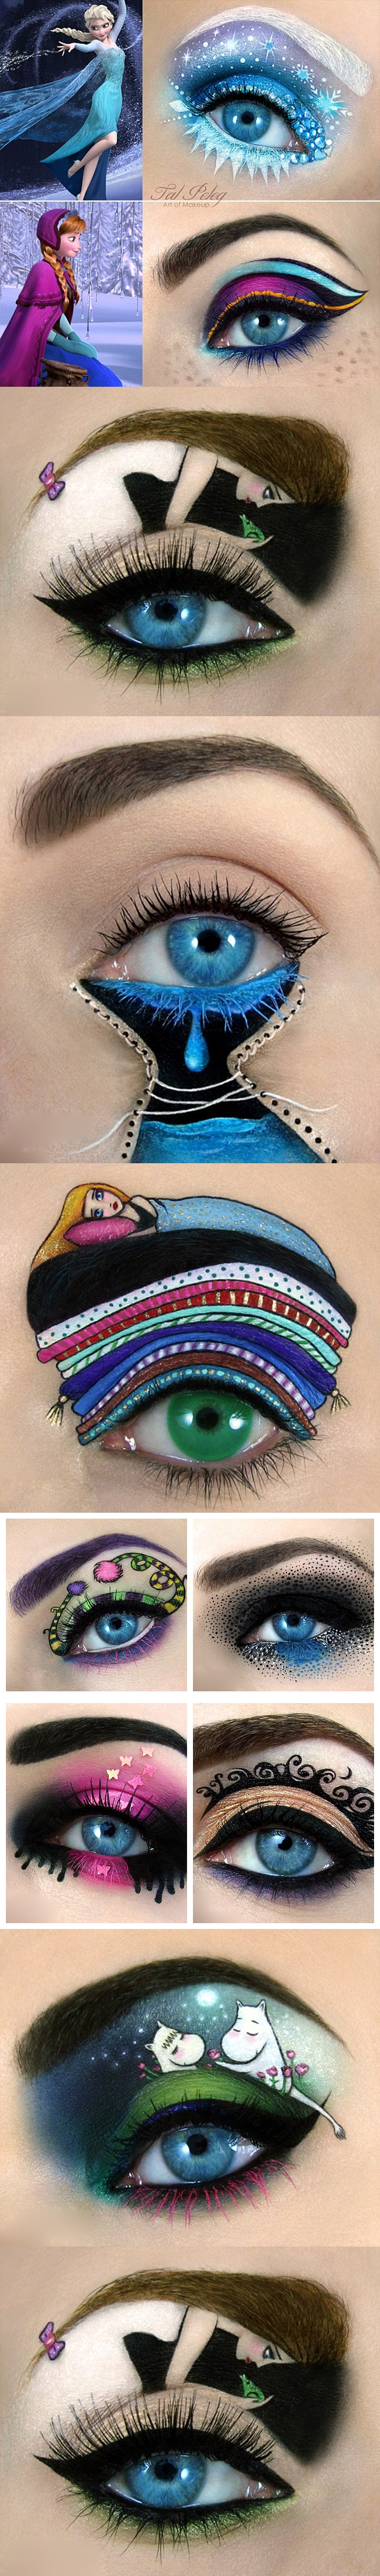 art of makeup f vert Wonderful eye art of make up